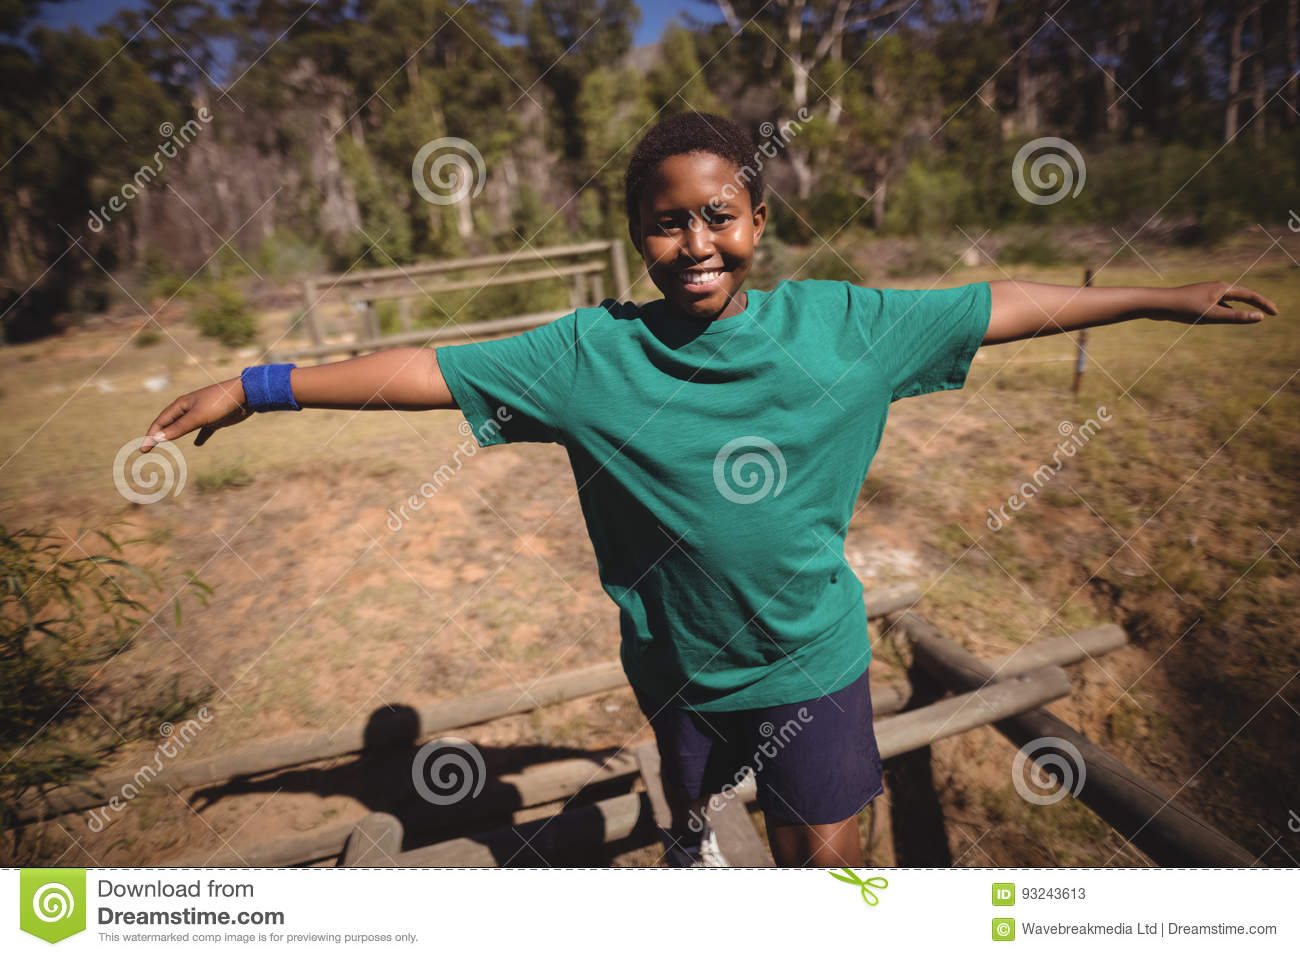 Portrait of happy boy walking on obstacle during obstacle course